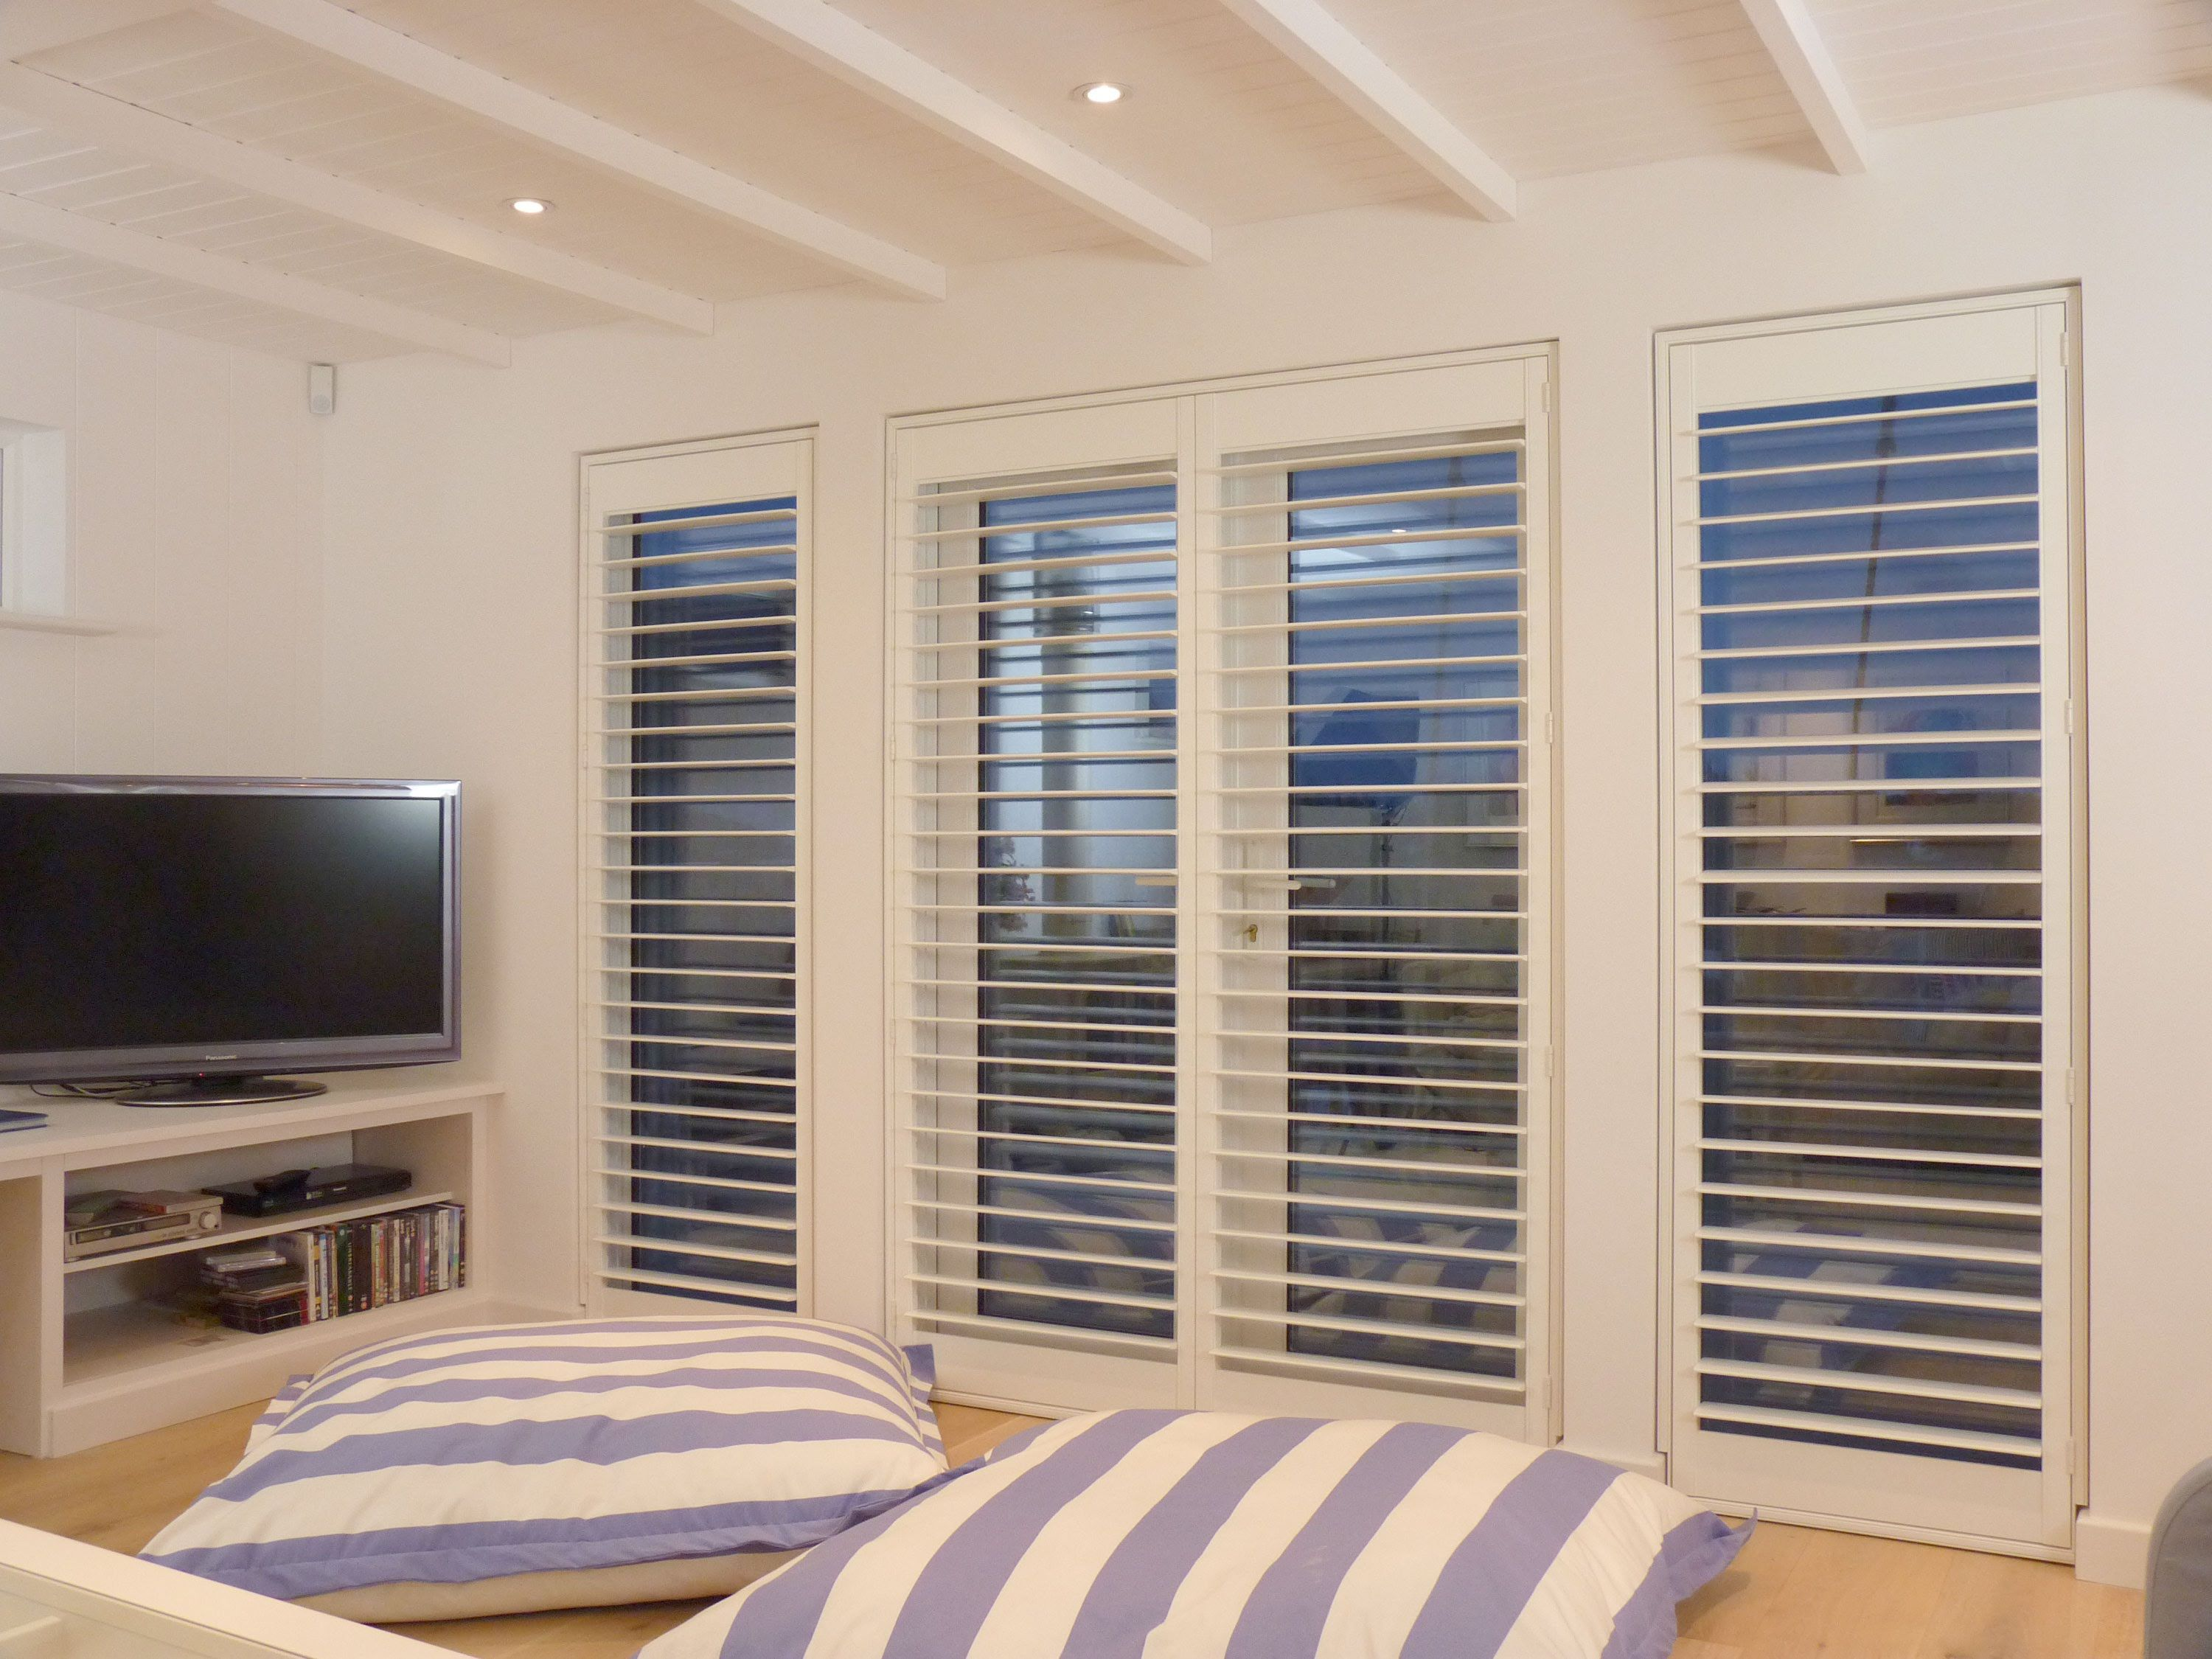 Plantation Shutters Guide Top 5 Window Shutter Designs 31625976 Choosing A French Door For Your Home